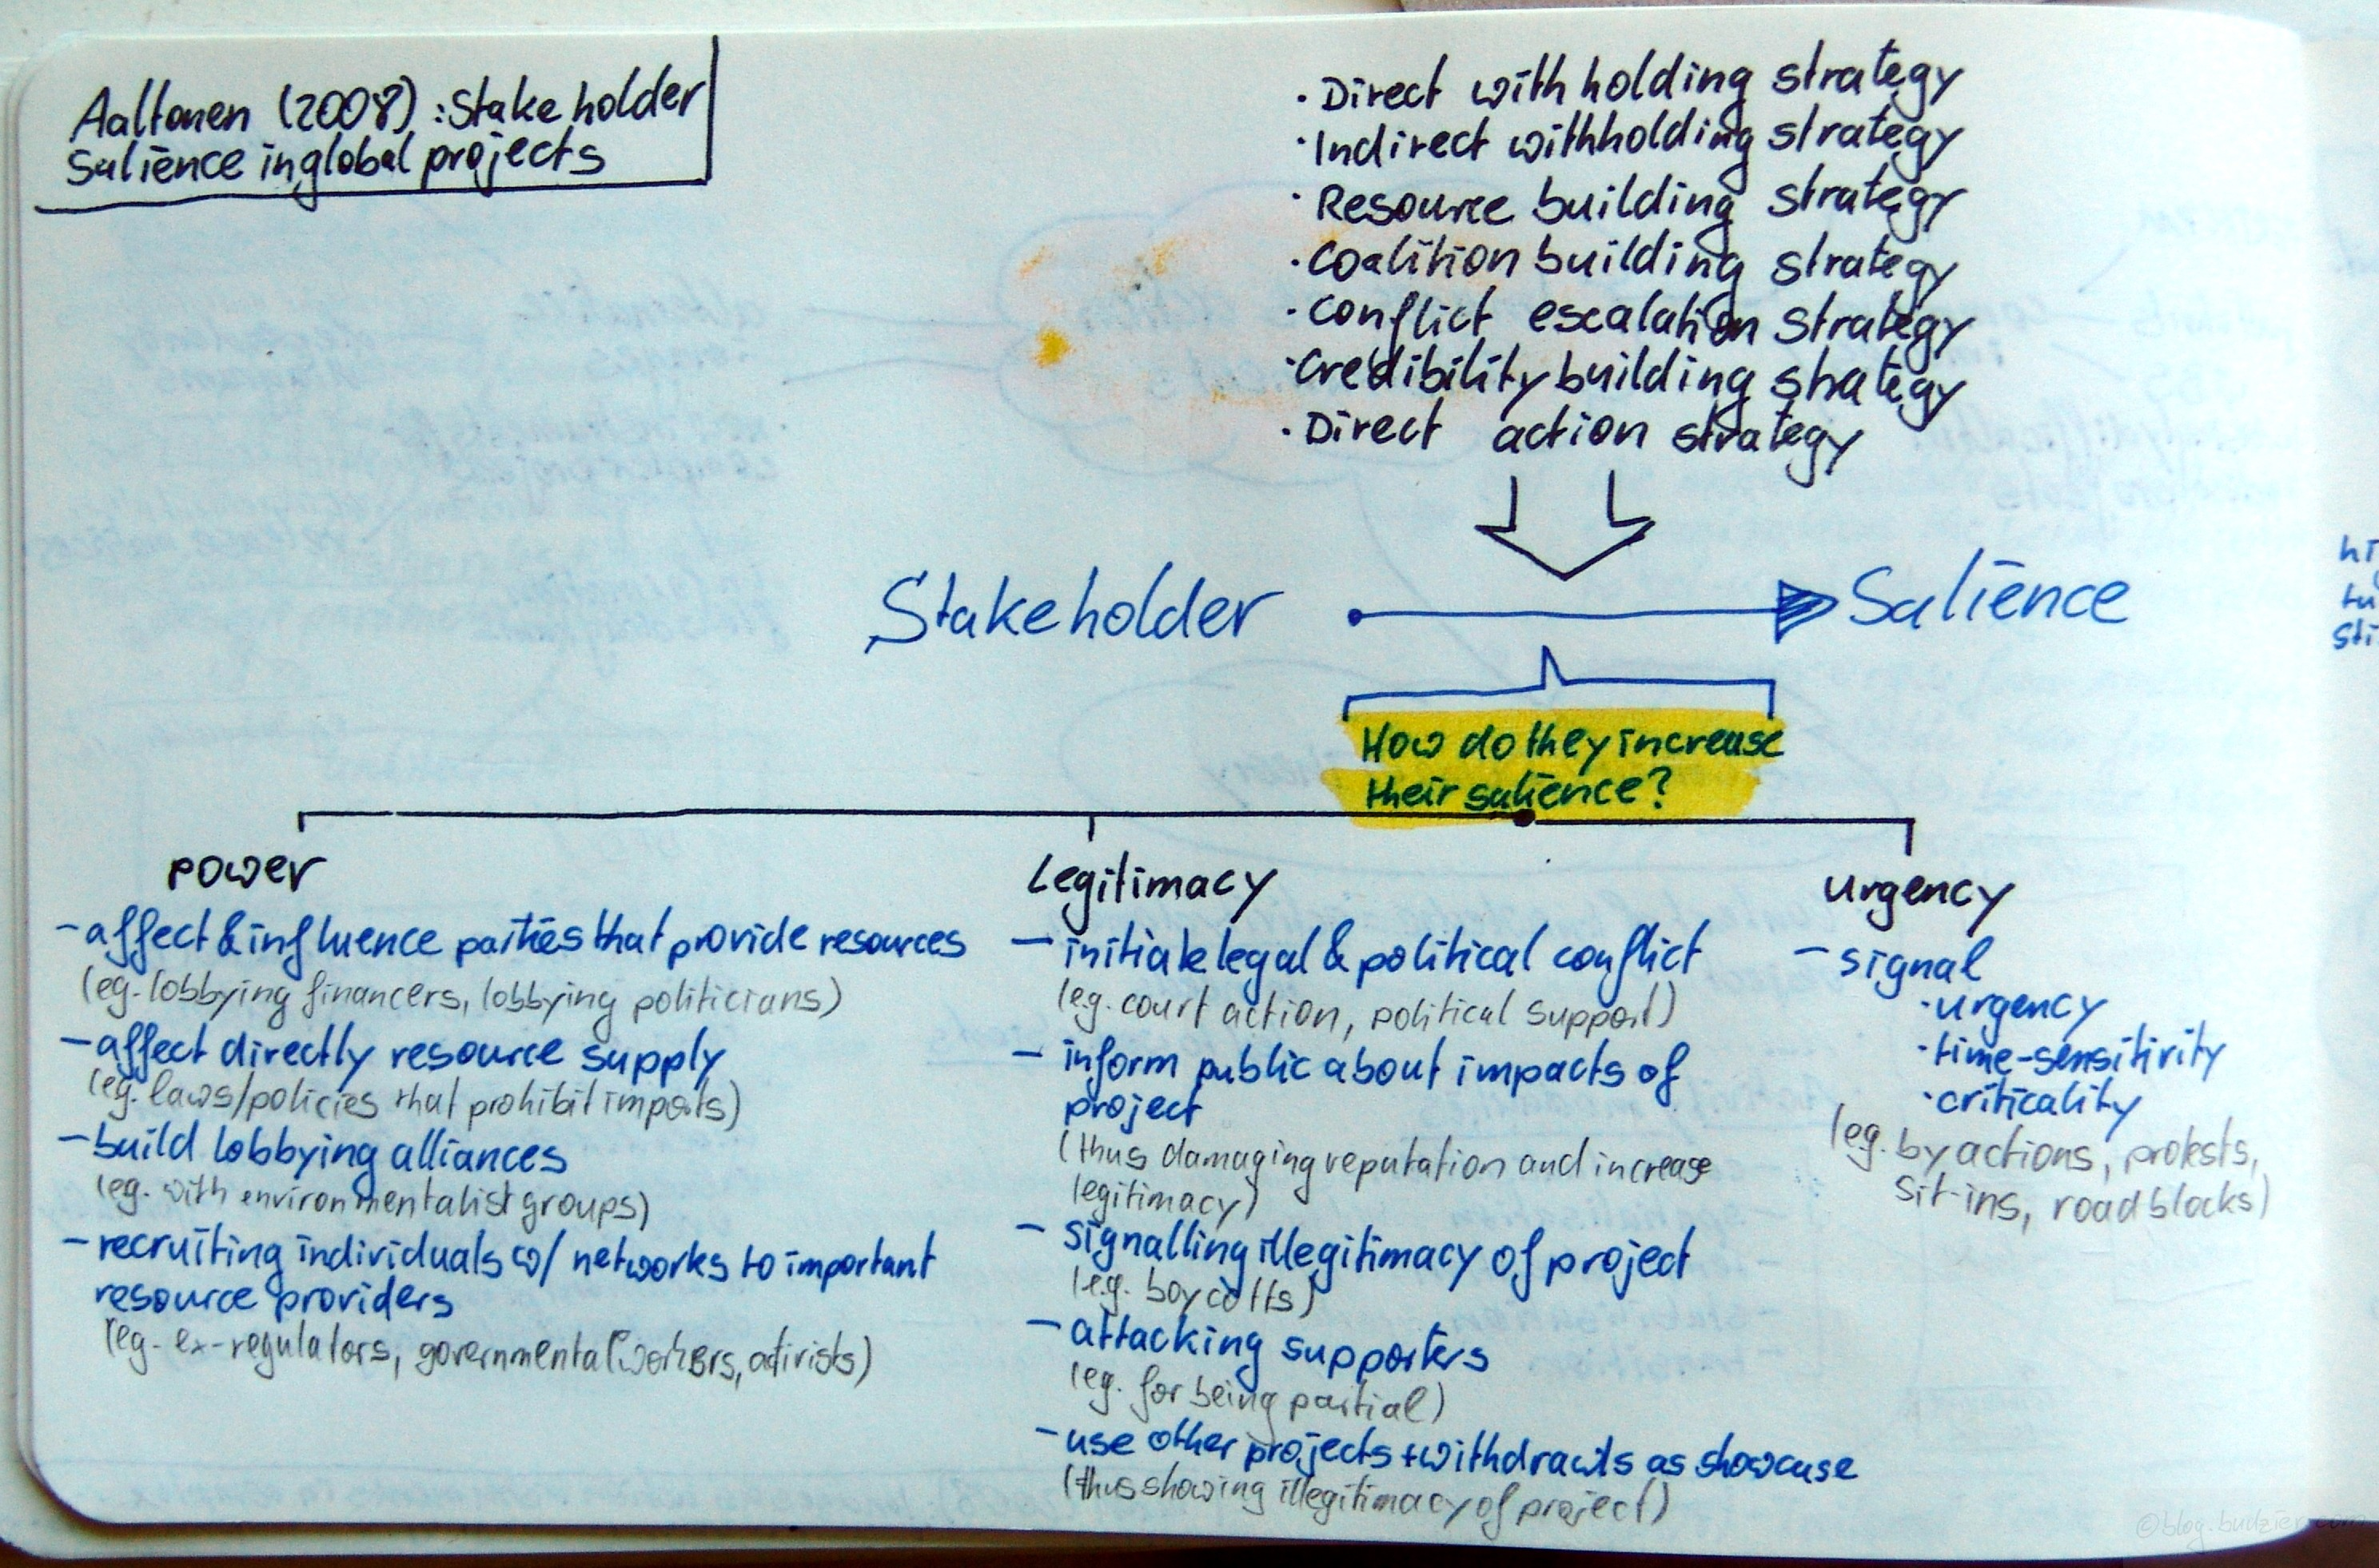 Stakeholder salience in global projects (Aaltonen et al., 2008)